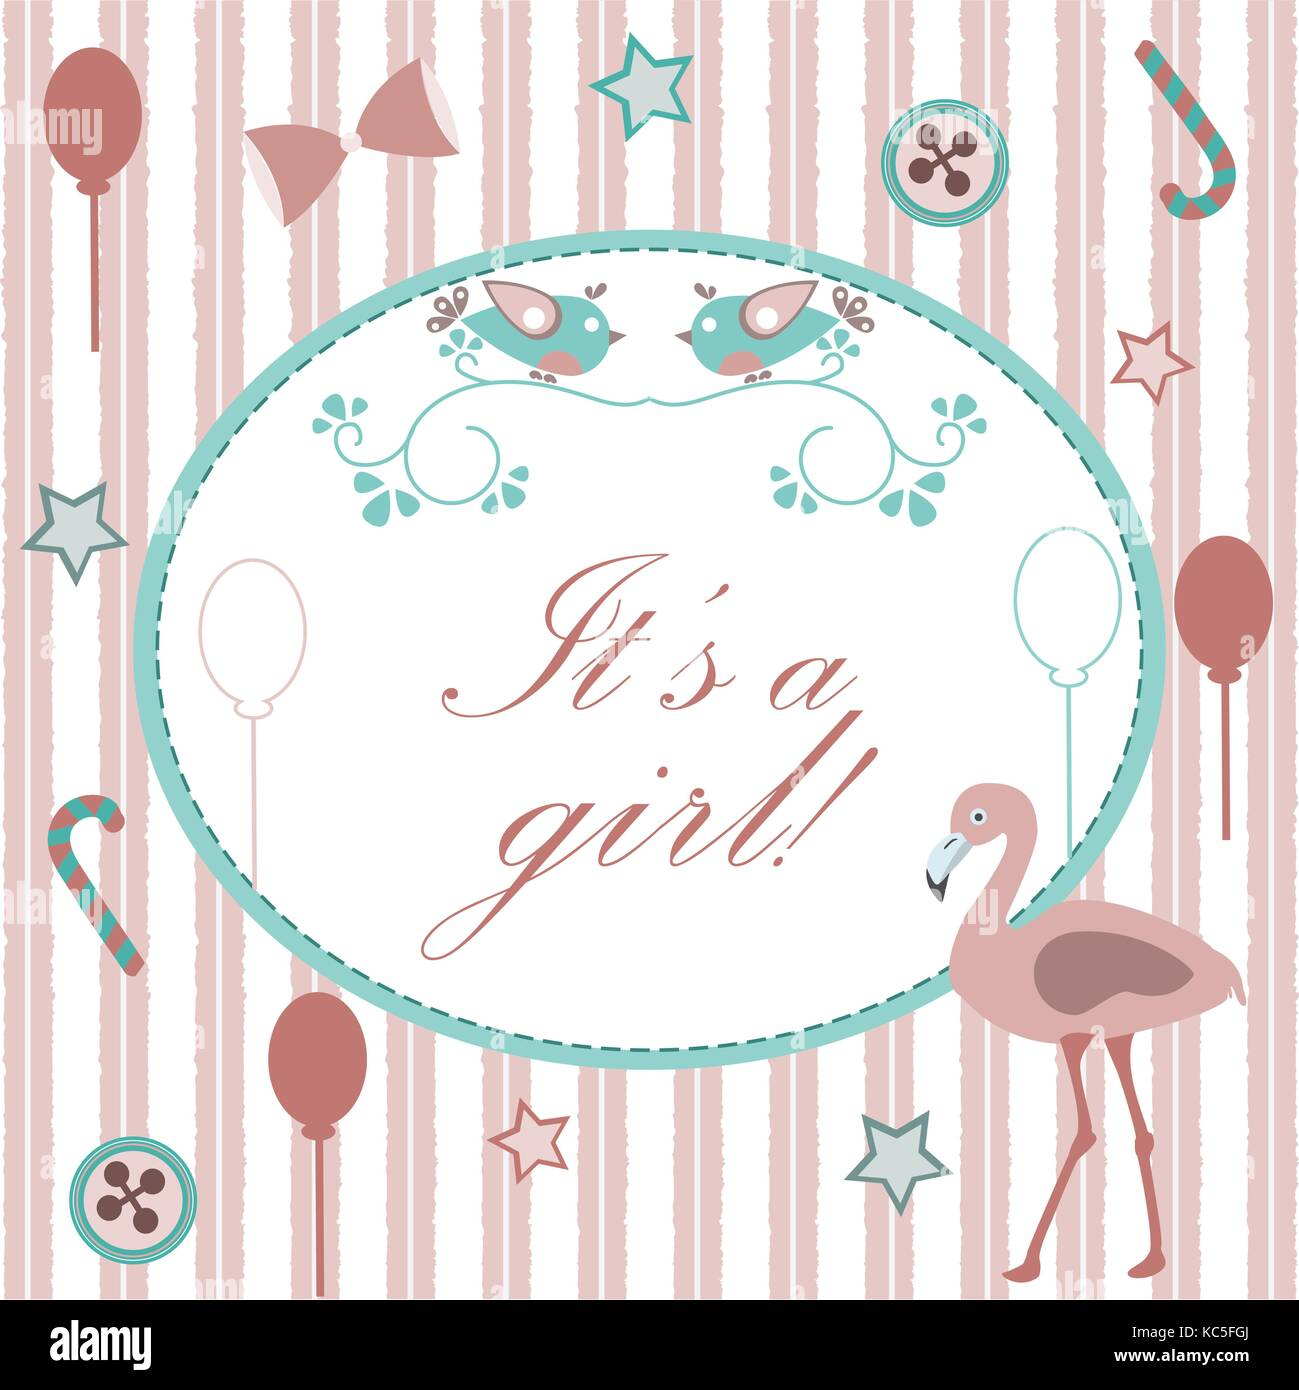 baby girl birth announcement baby shower invitation card cute pink